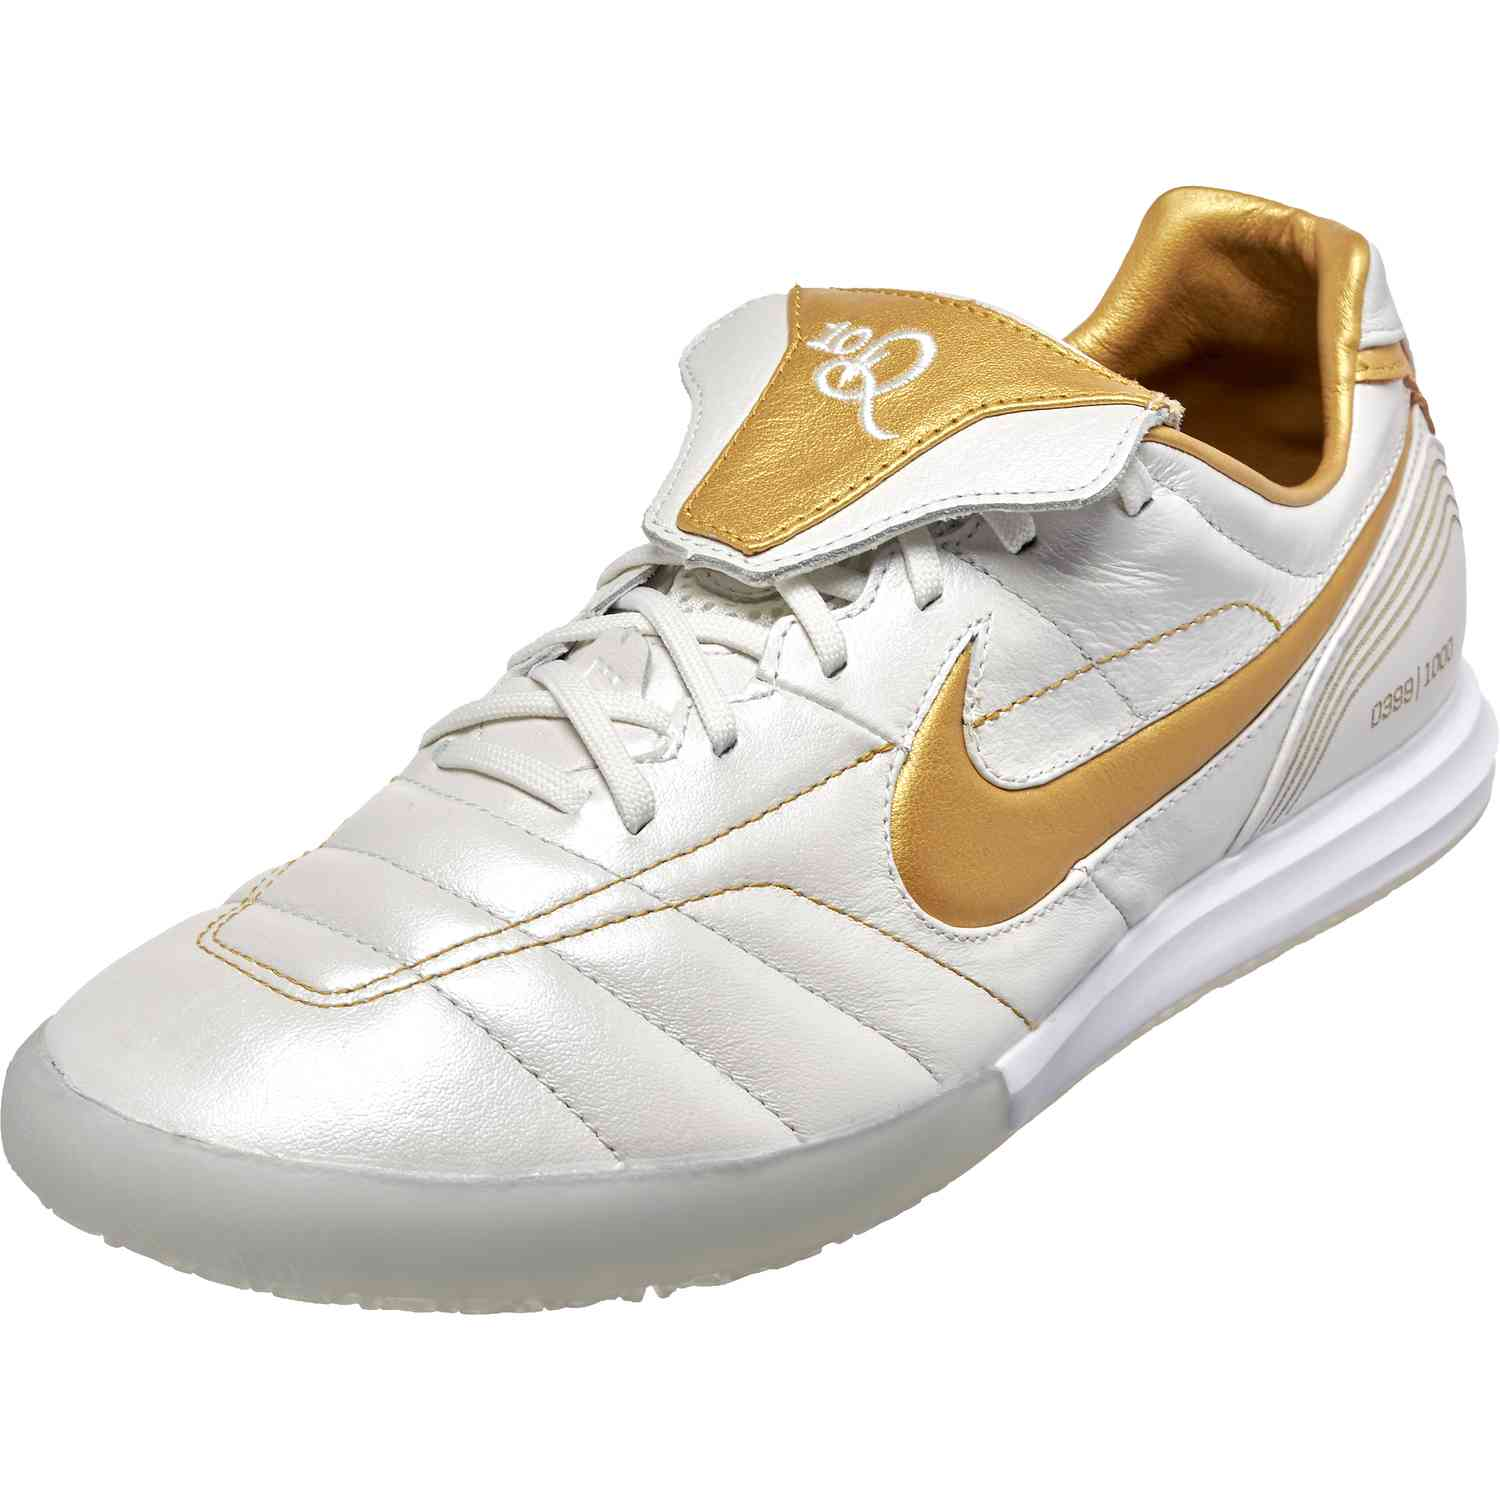 36224499e Nike Tiempo Lunar Legend 10R Elite IC - White and Gold - SoccerPro.com